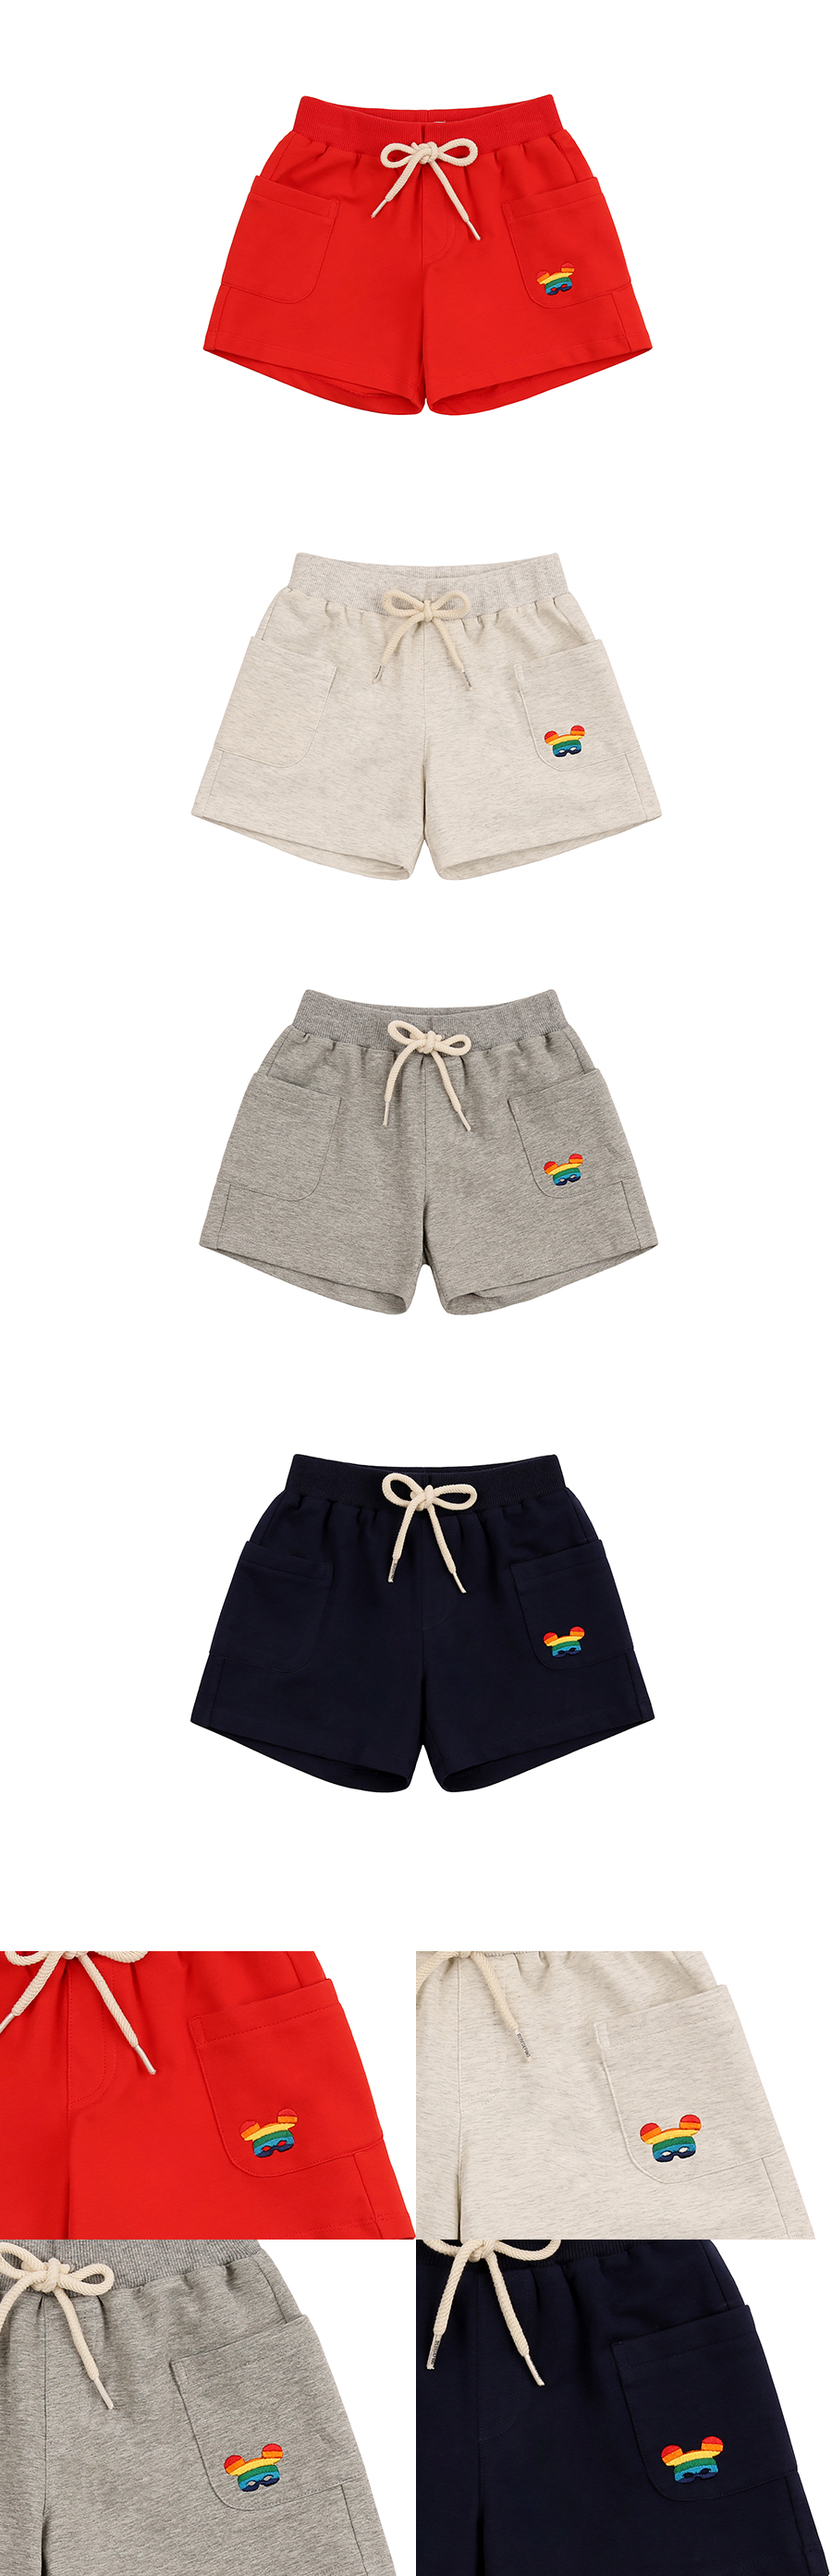 Basic rainbow pino jersey shorts 상세 이미지